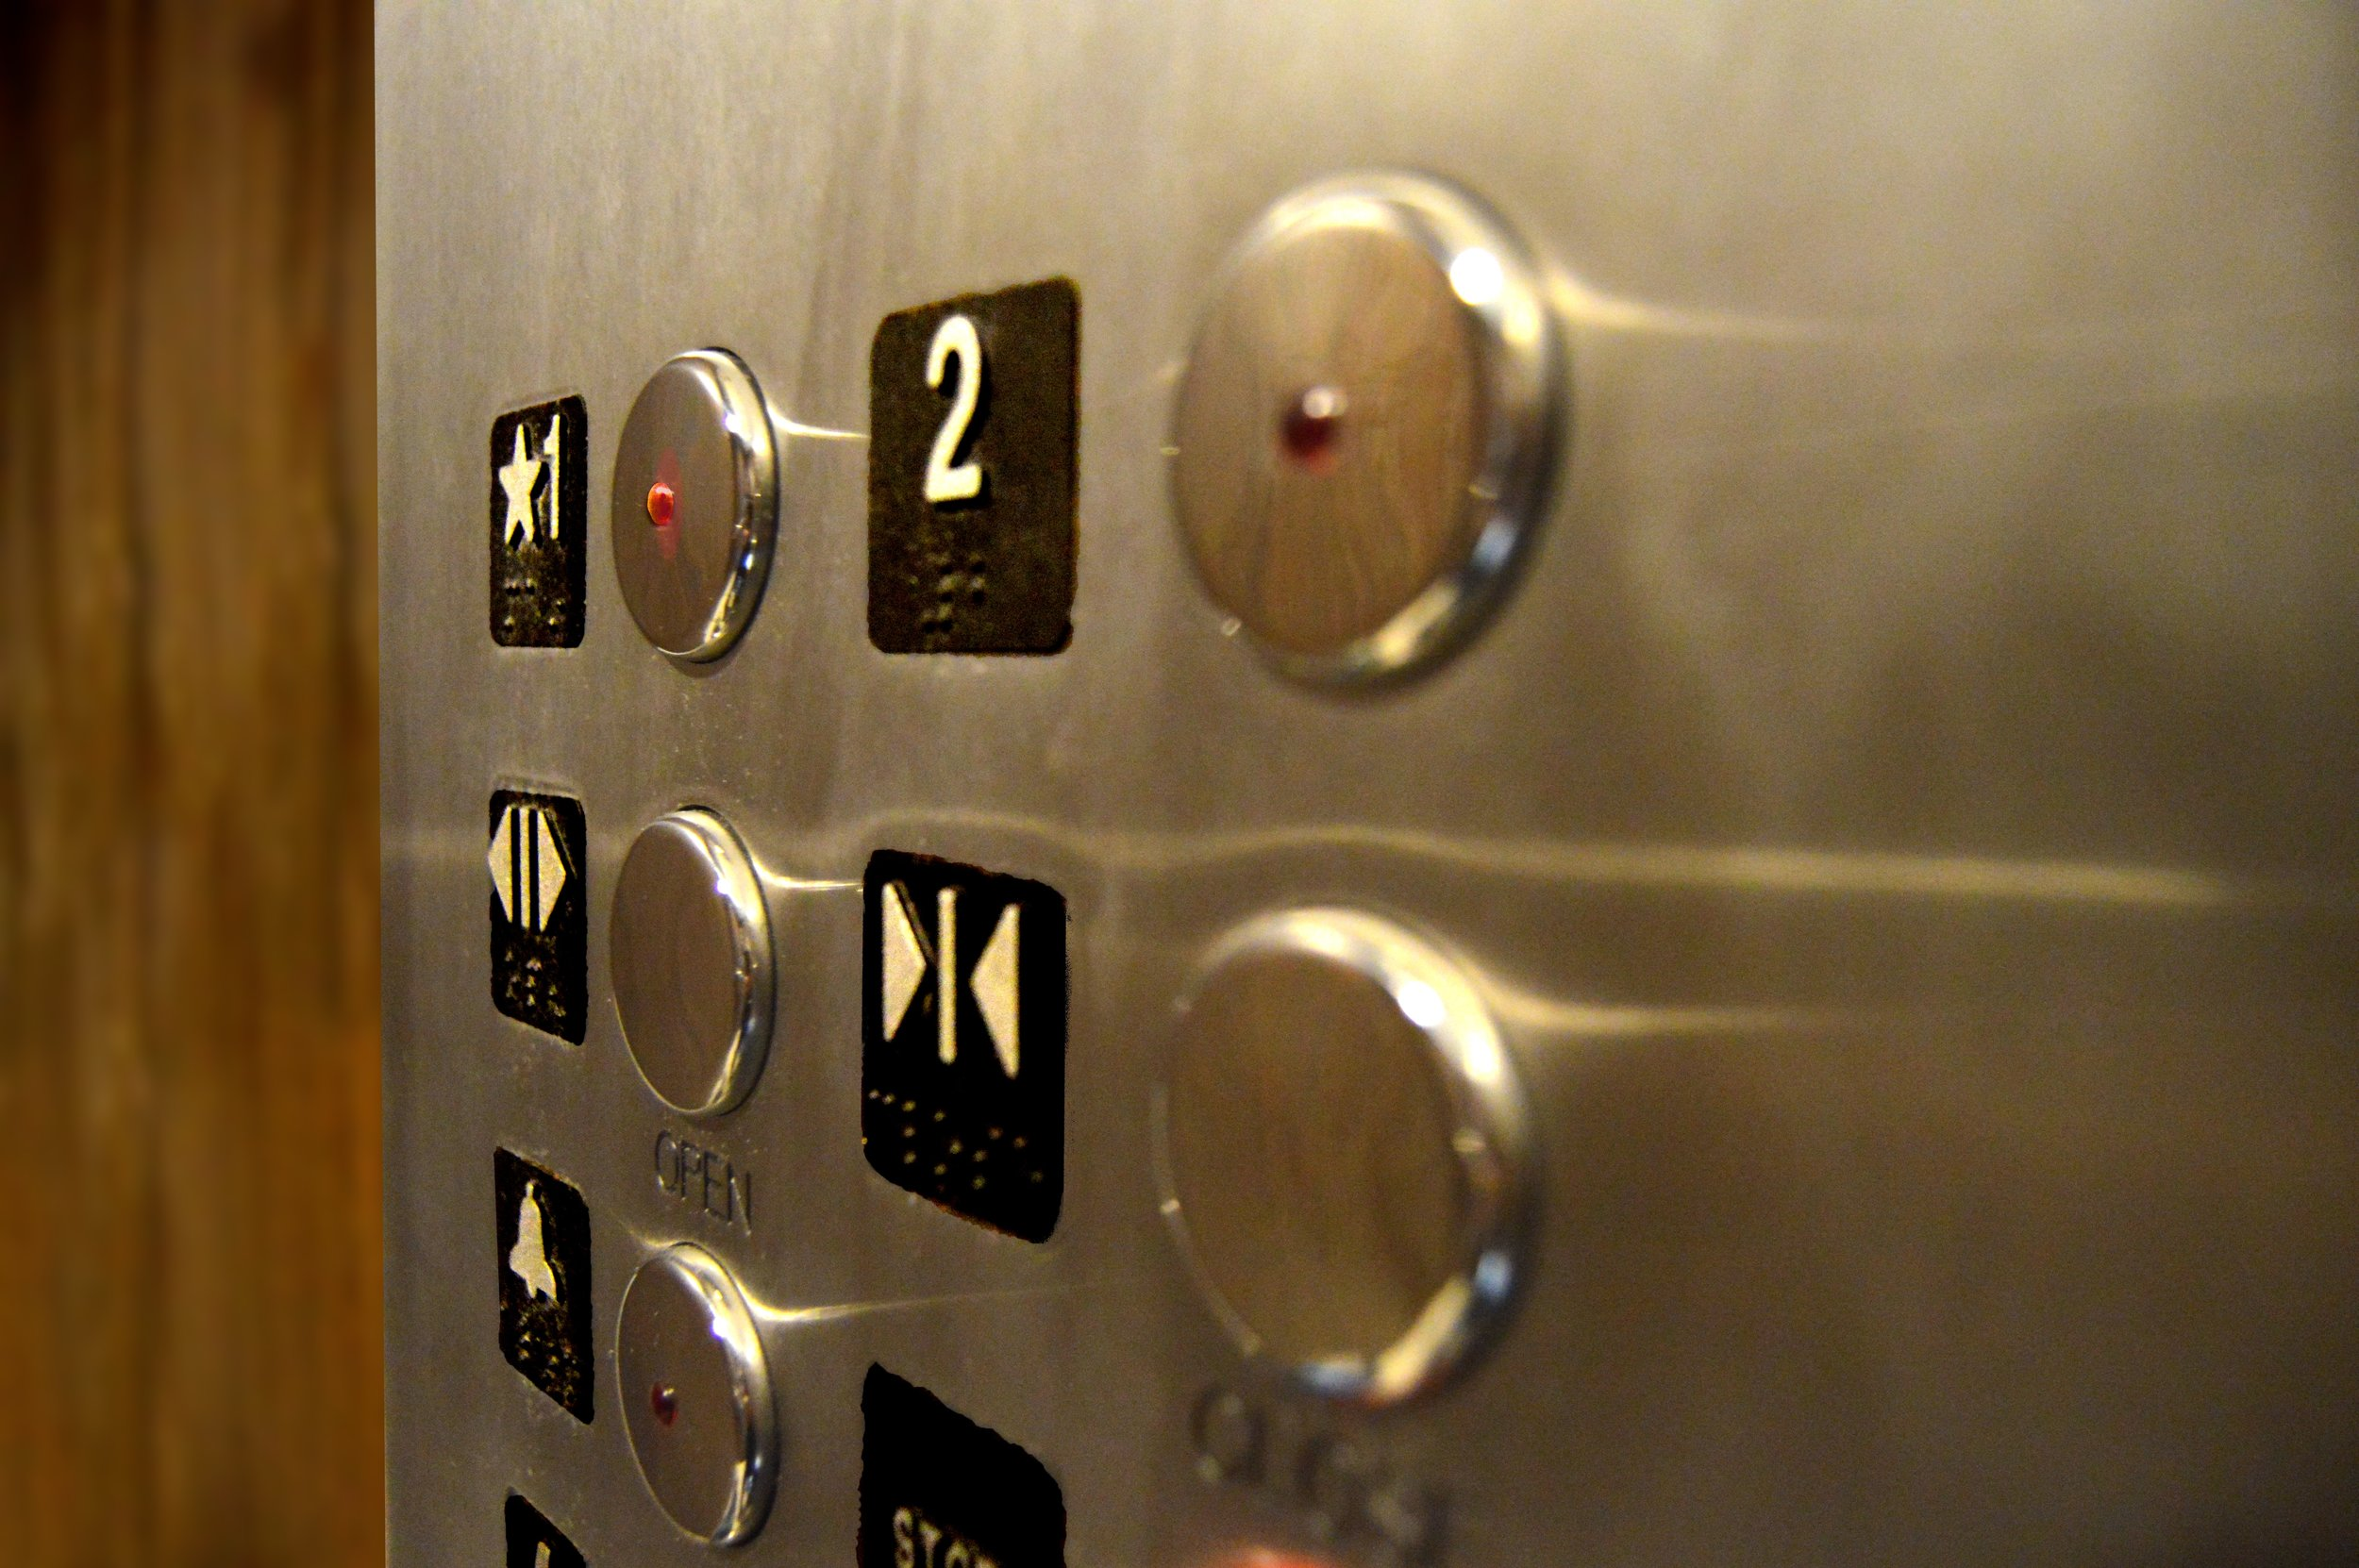 Photo of elevator buttons by Unsplash